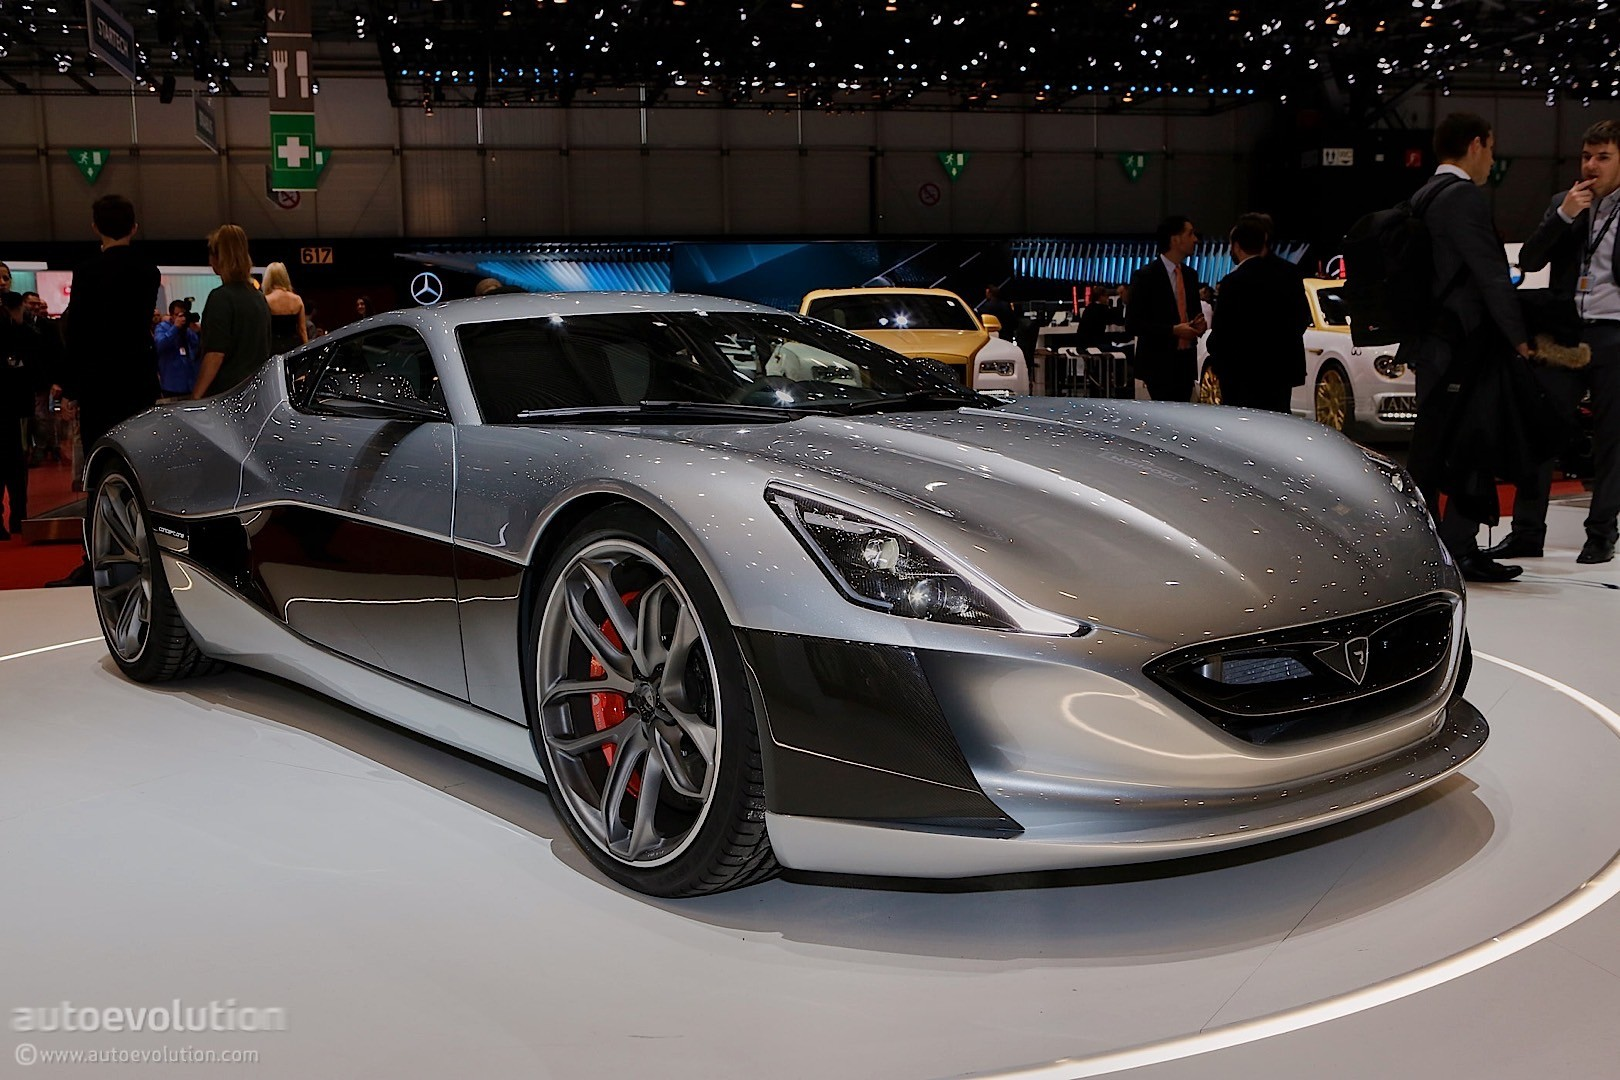 Rimac Concept One And Concept S Quietly Place Croatia On